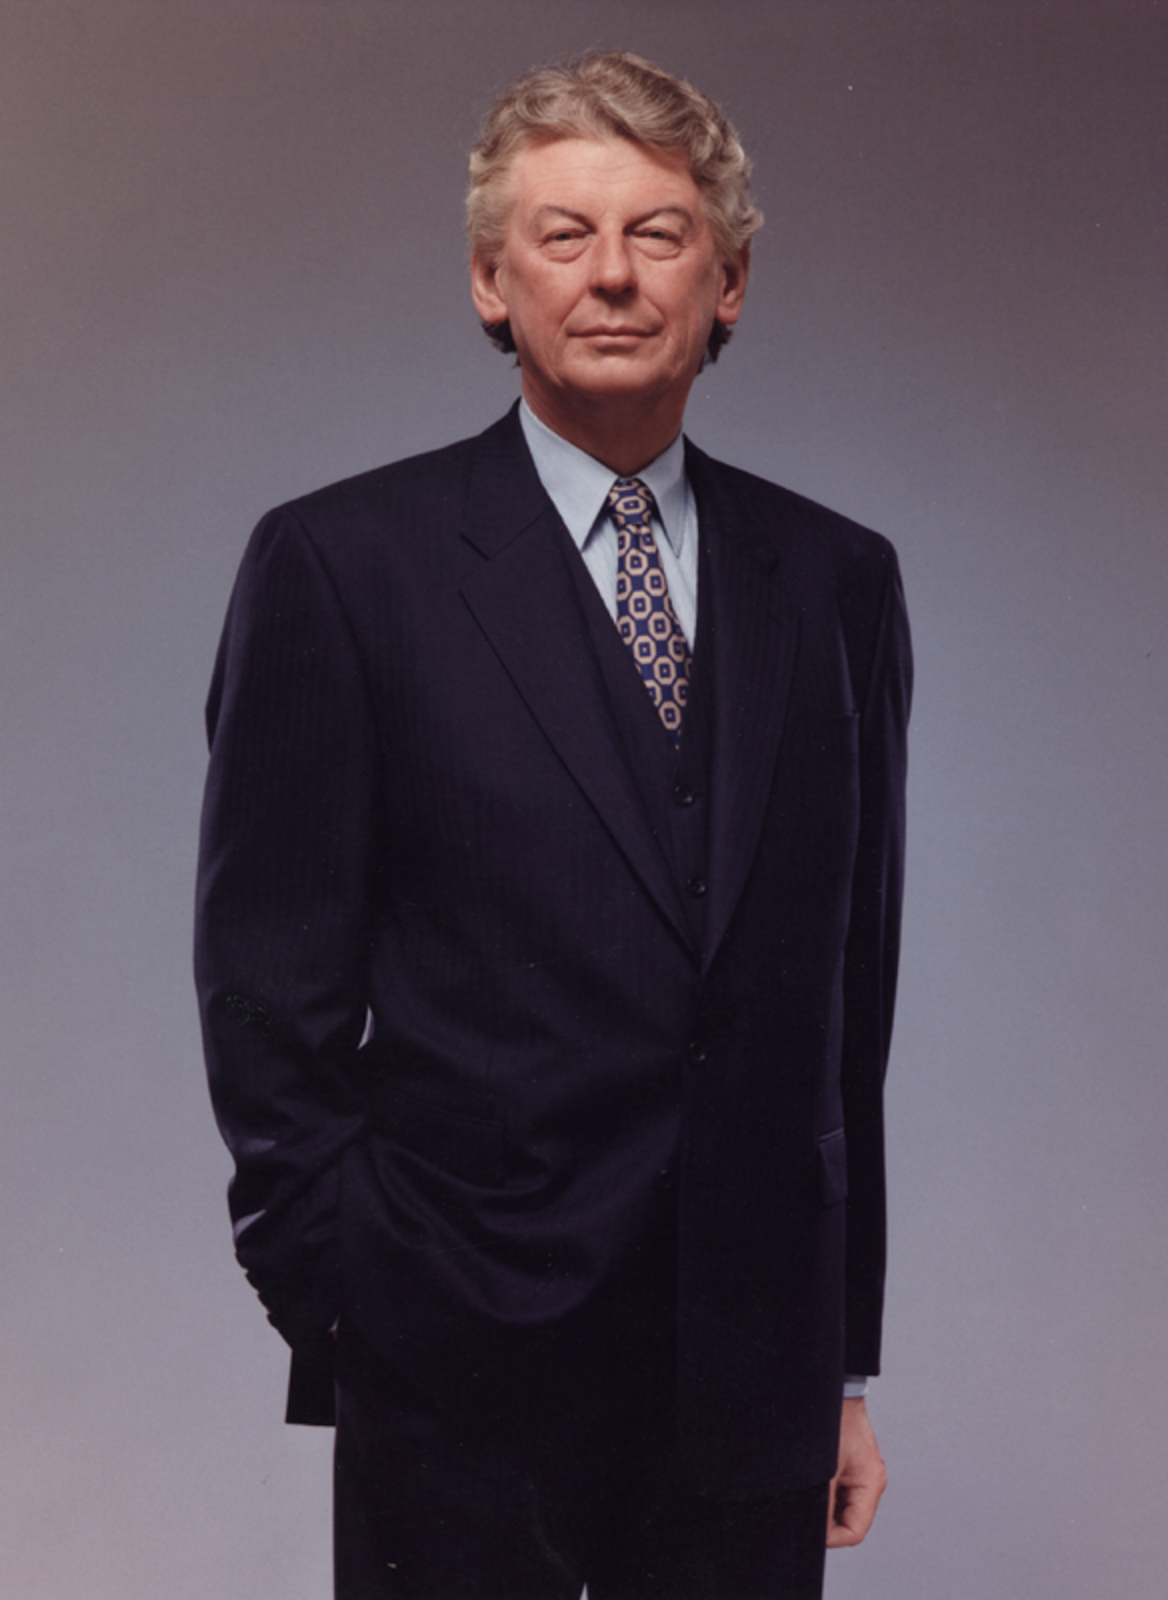 wim kok three quarts.jpg